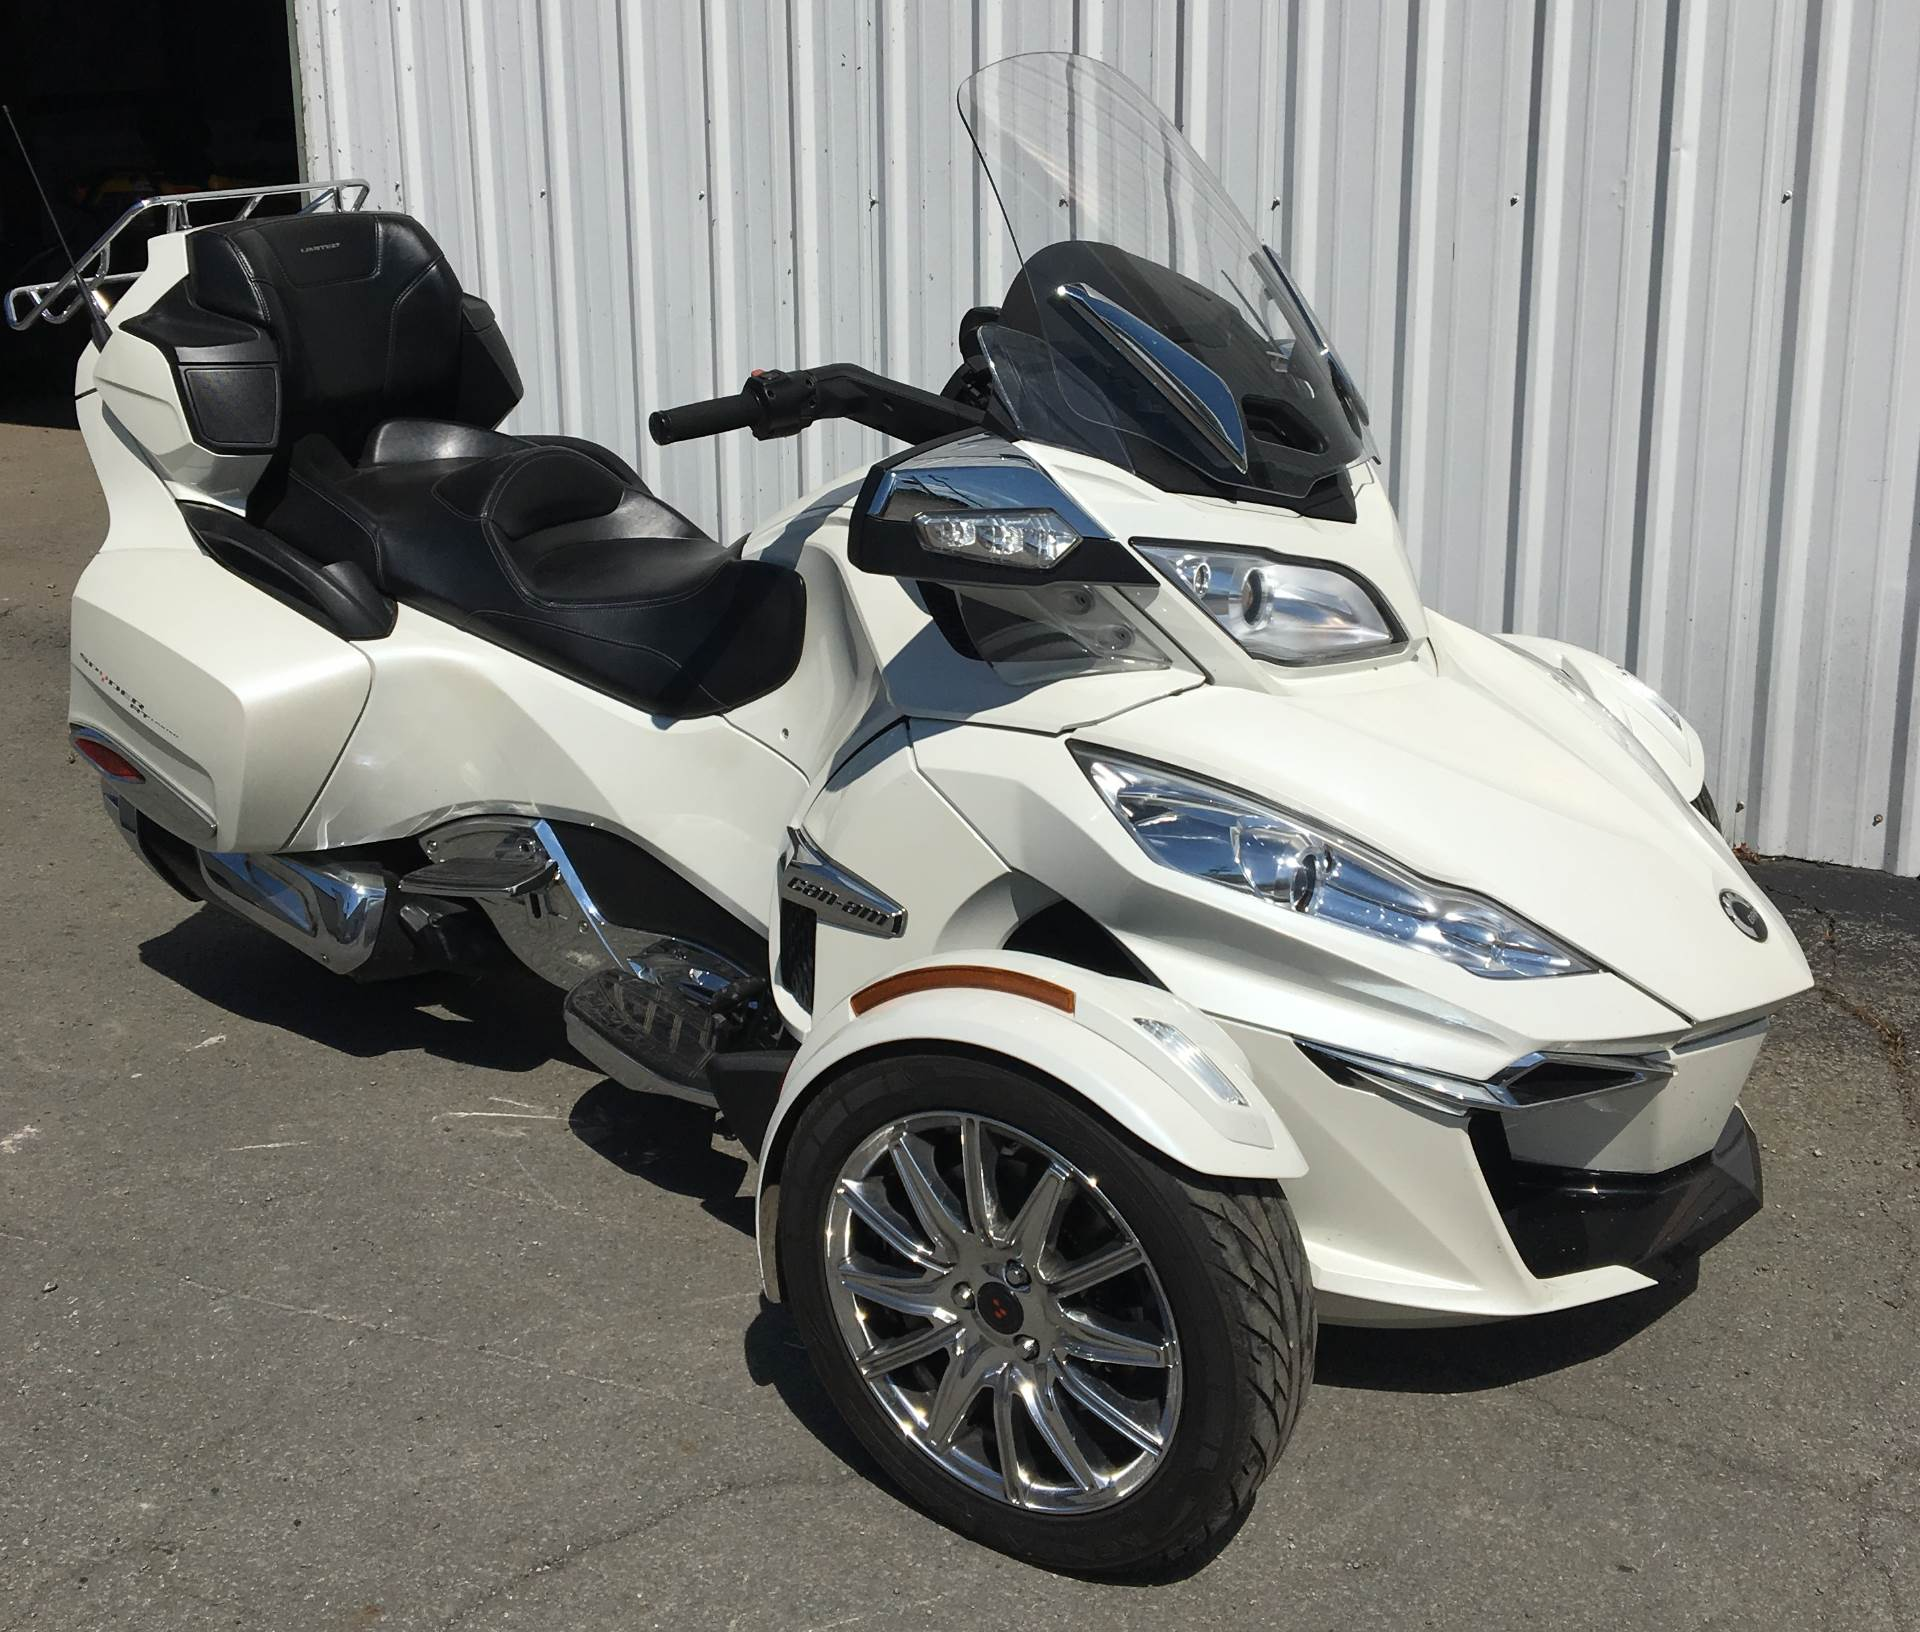 2016 Can-Am Spyder RT Limited in Walton, New York - Photo 2